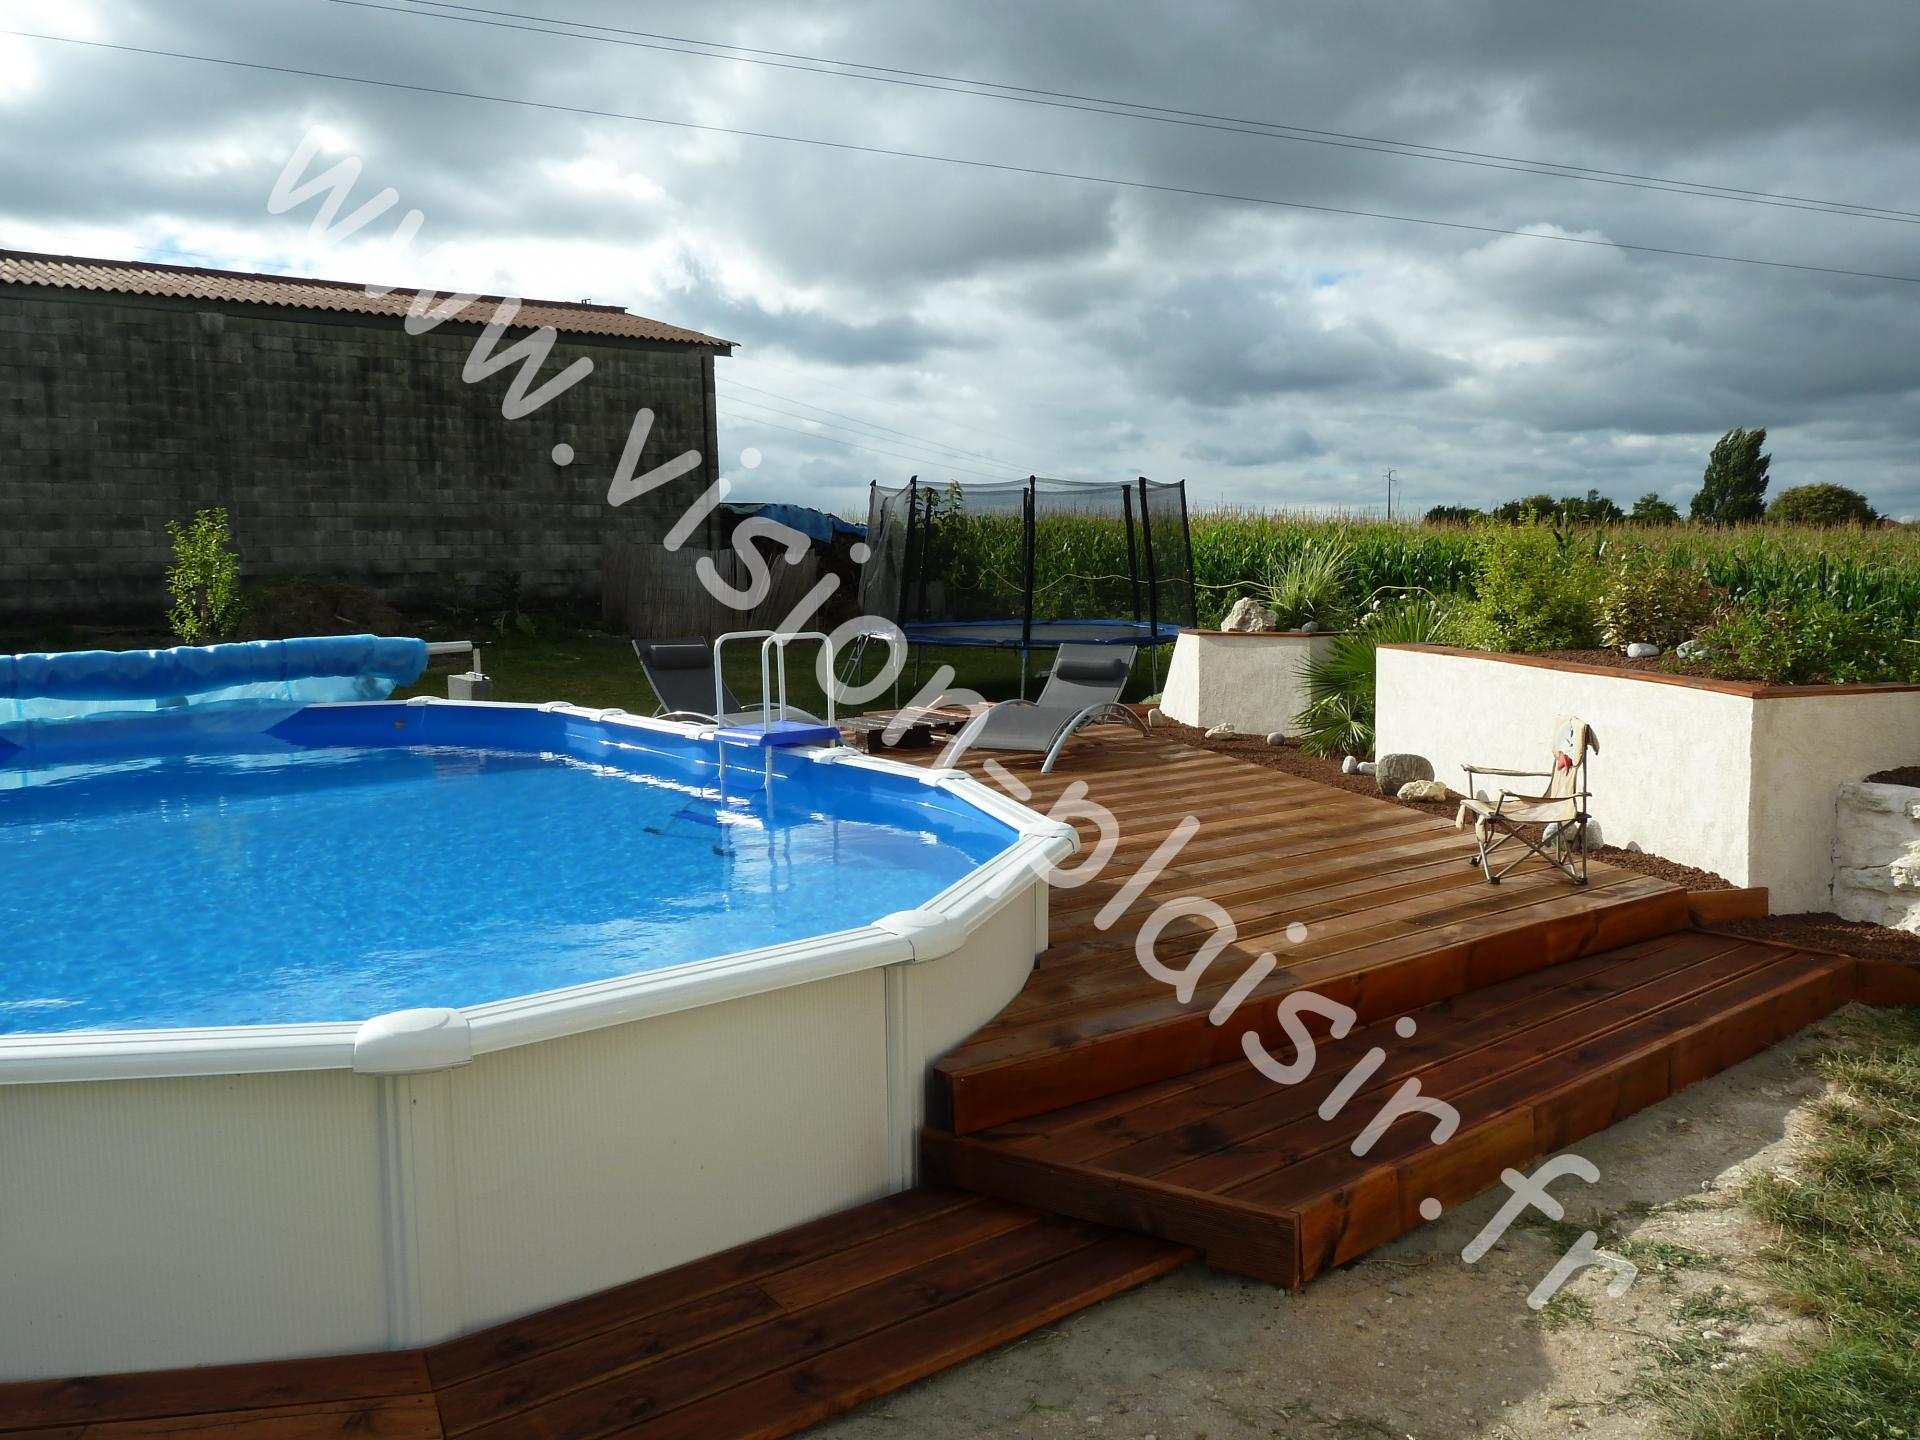 Blog de vision plaisir piscine hors sol semi enterr e for Piscine bois a enterrer